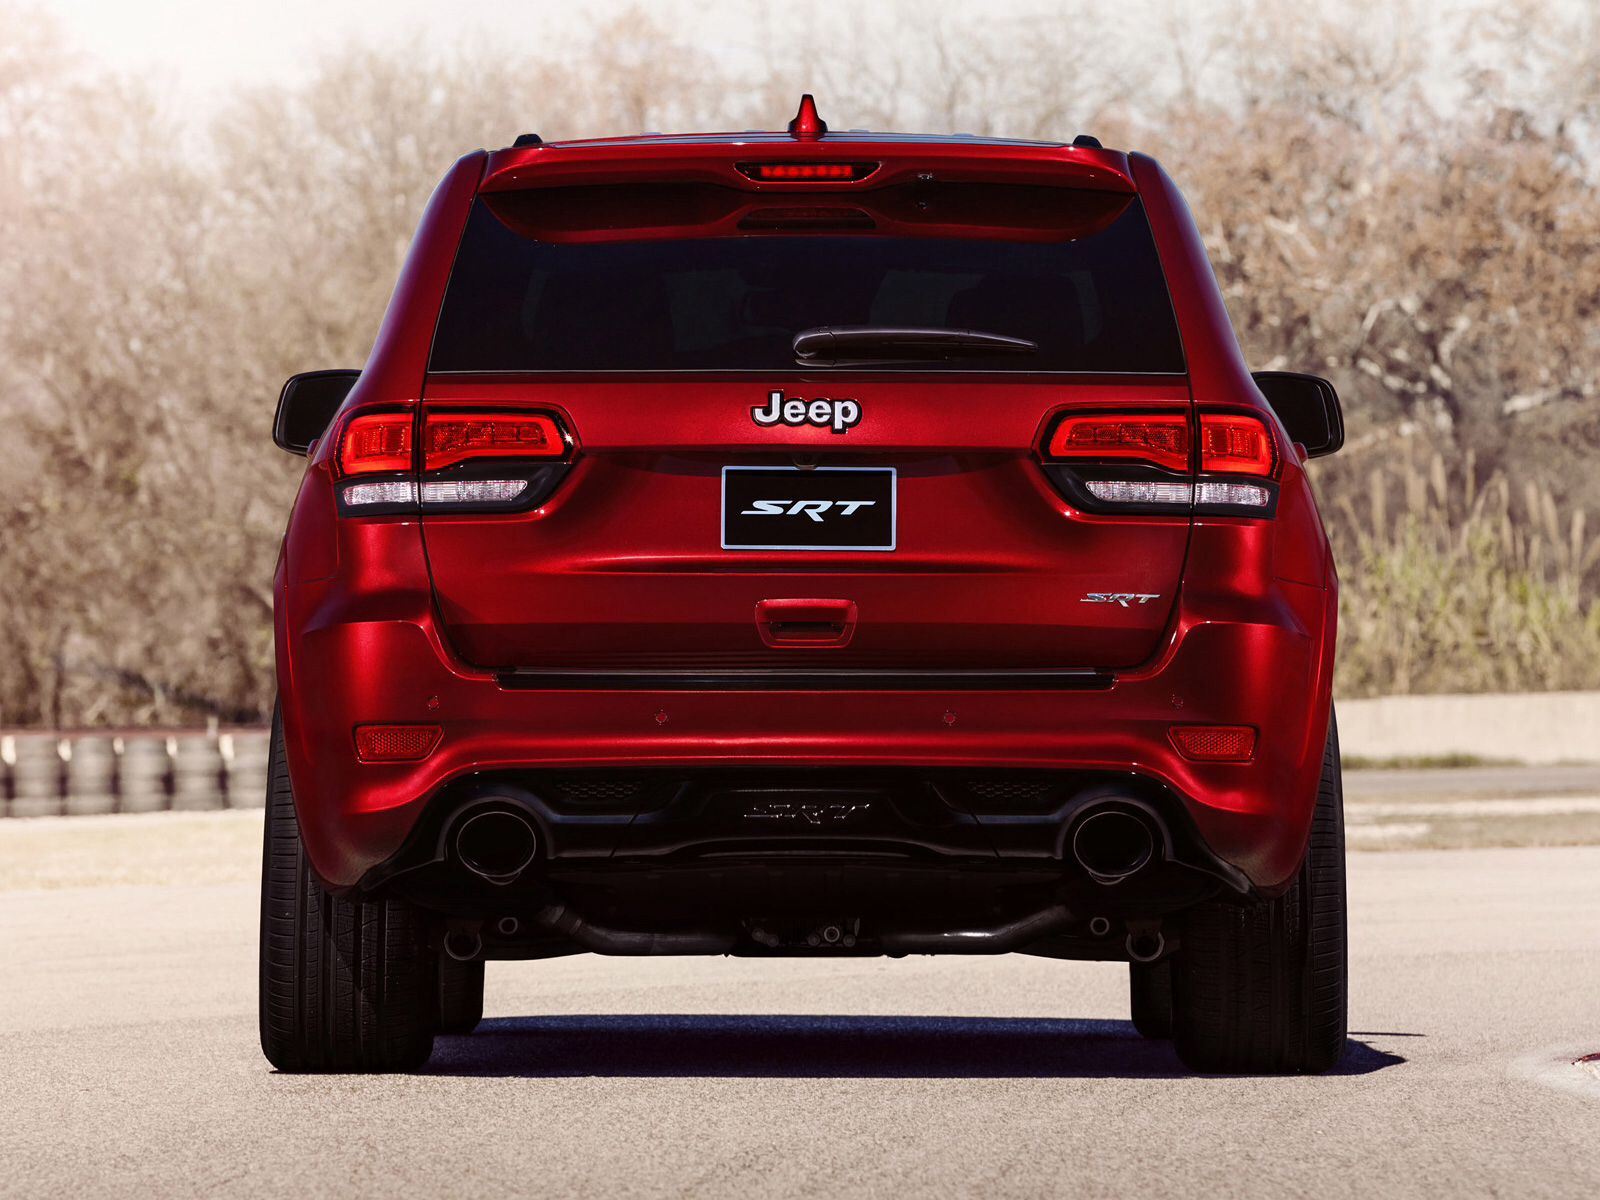 Jeep 5 Jeep grand cherokee srt, 2014 jeep grand cherokee